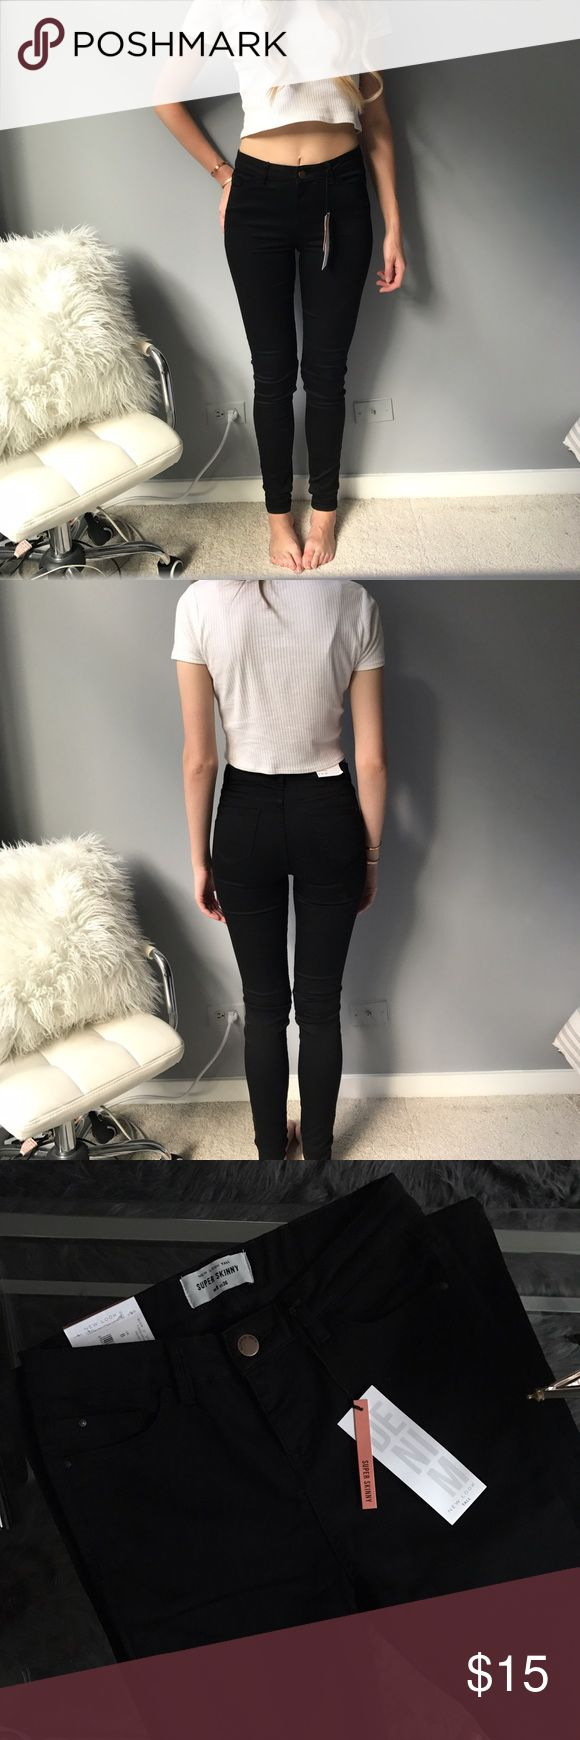 New Look TALL Black Skinny Jeans NWT! Selling because I missed the return window and they are too long on me. Bought from ASOS. PLEASE NOTE: the U.K. sizing on the tags pictured :) New Look Jeans Skinny